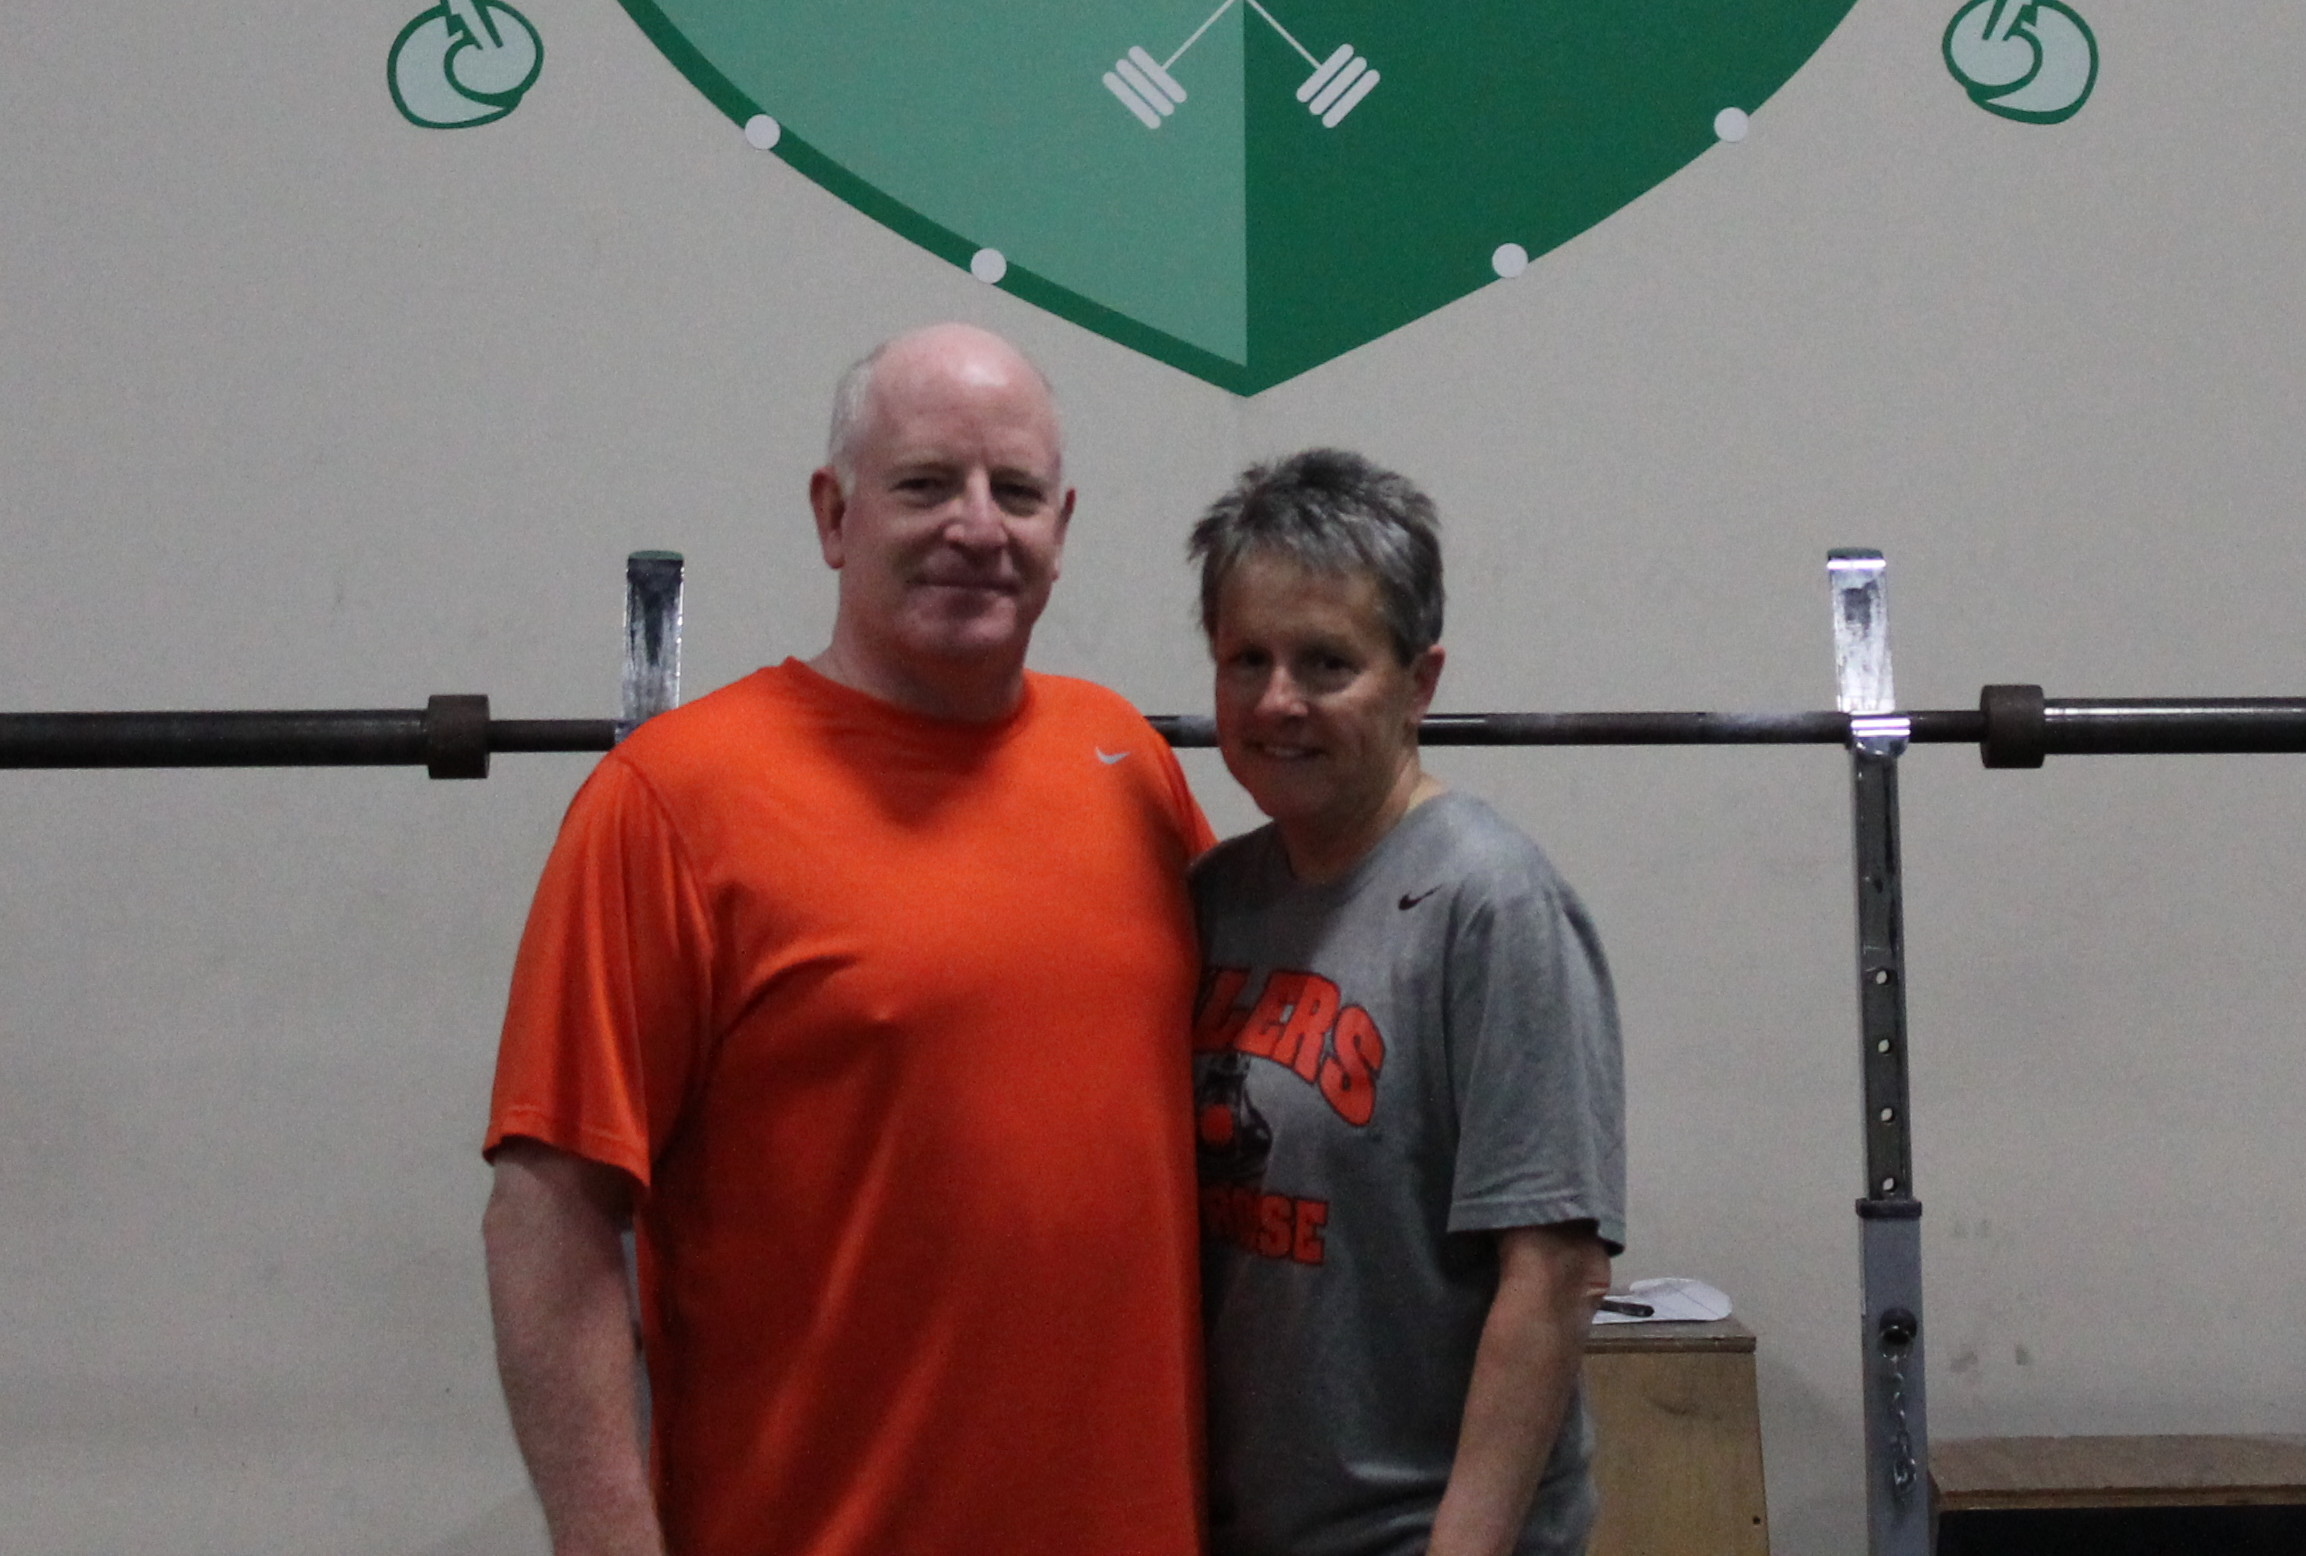 Lee Ann Lankton – From Injury to Recovery